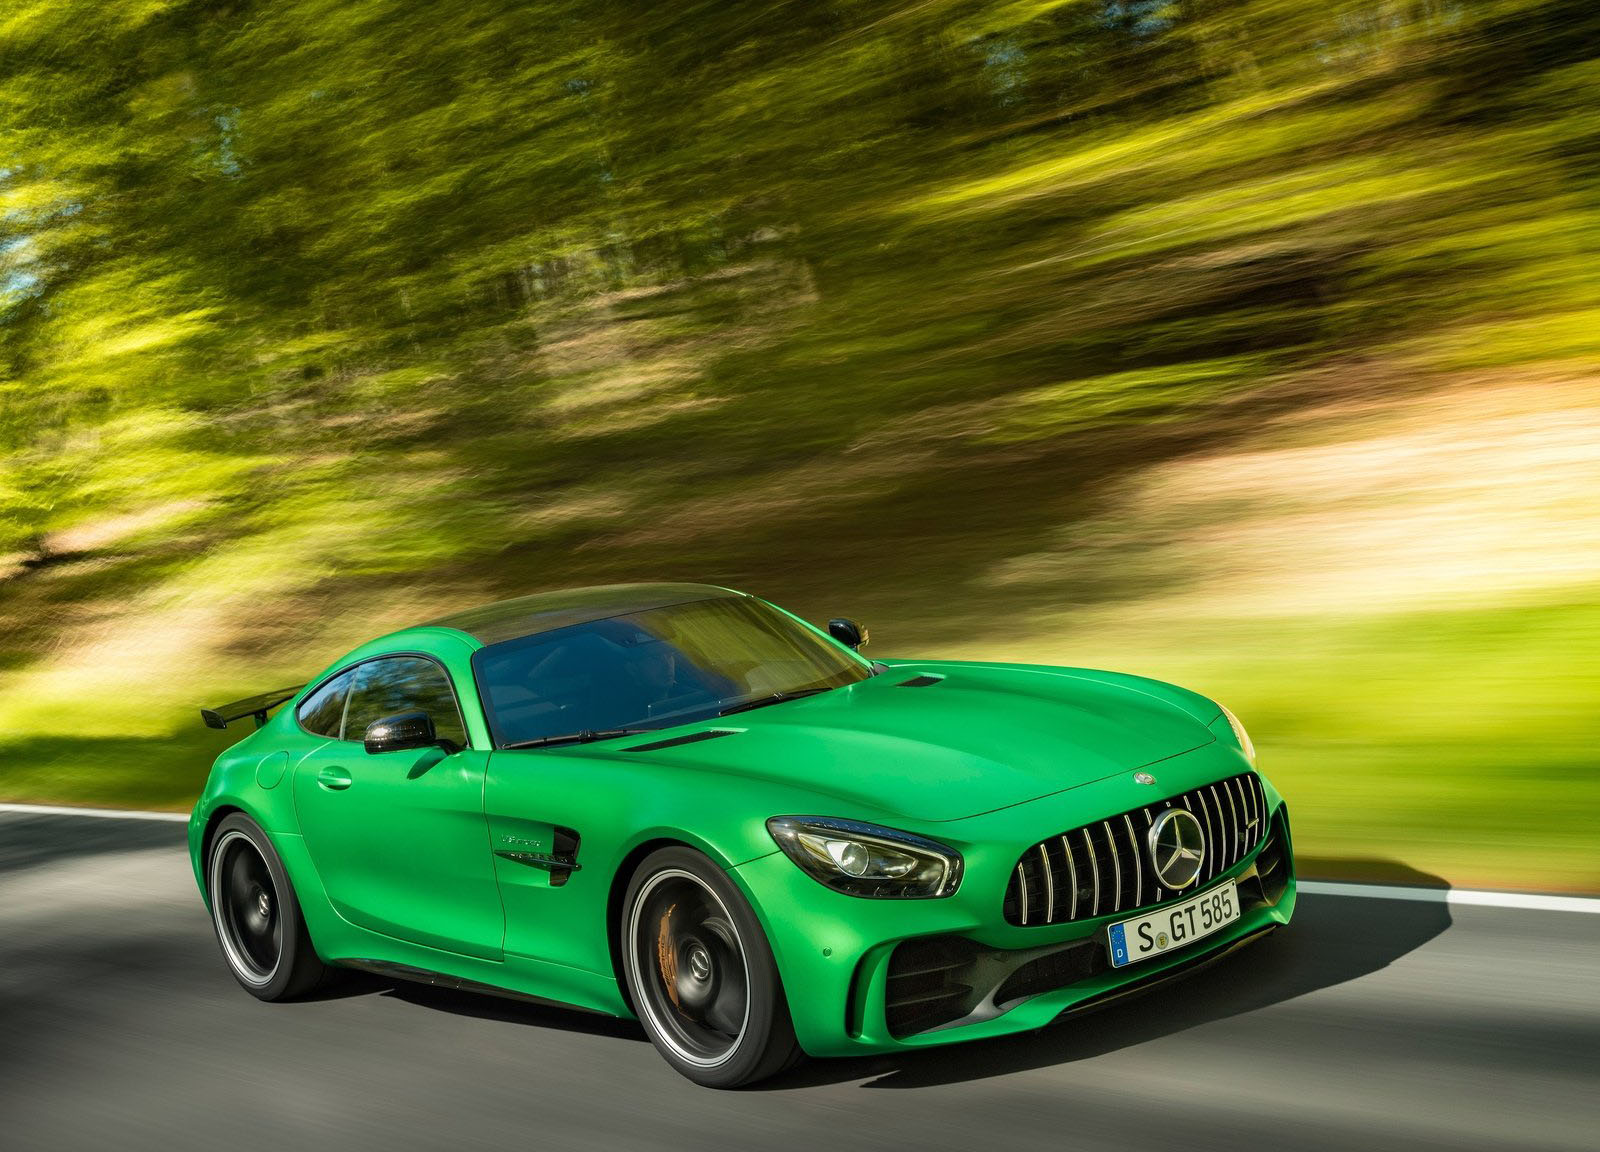 mercedes uk prices new amg gt roadster gt r carscoops. Black Bedroom Furniture Sets. Home Design Ideas